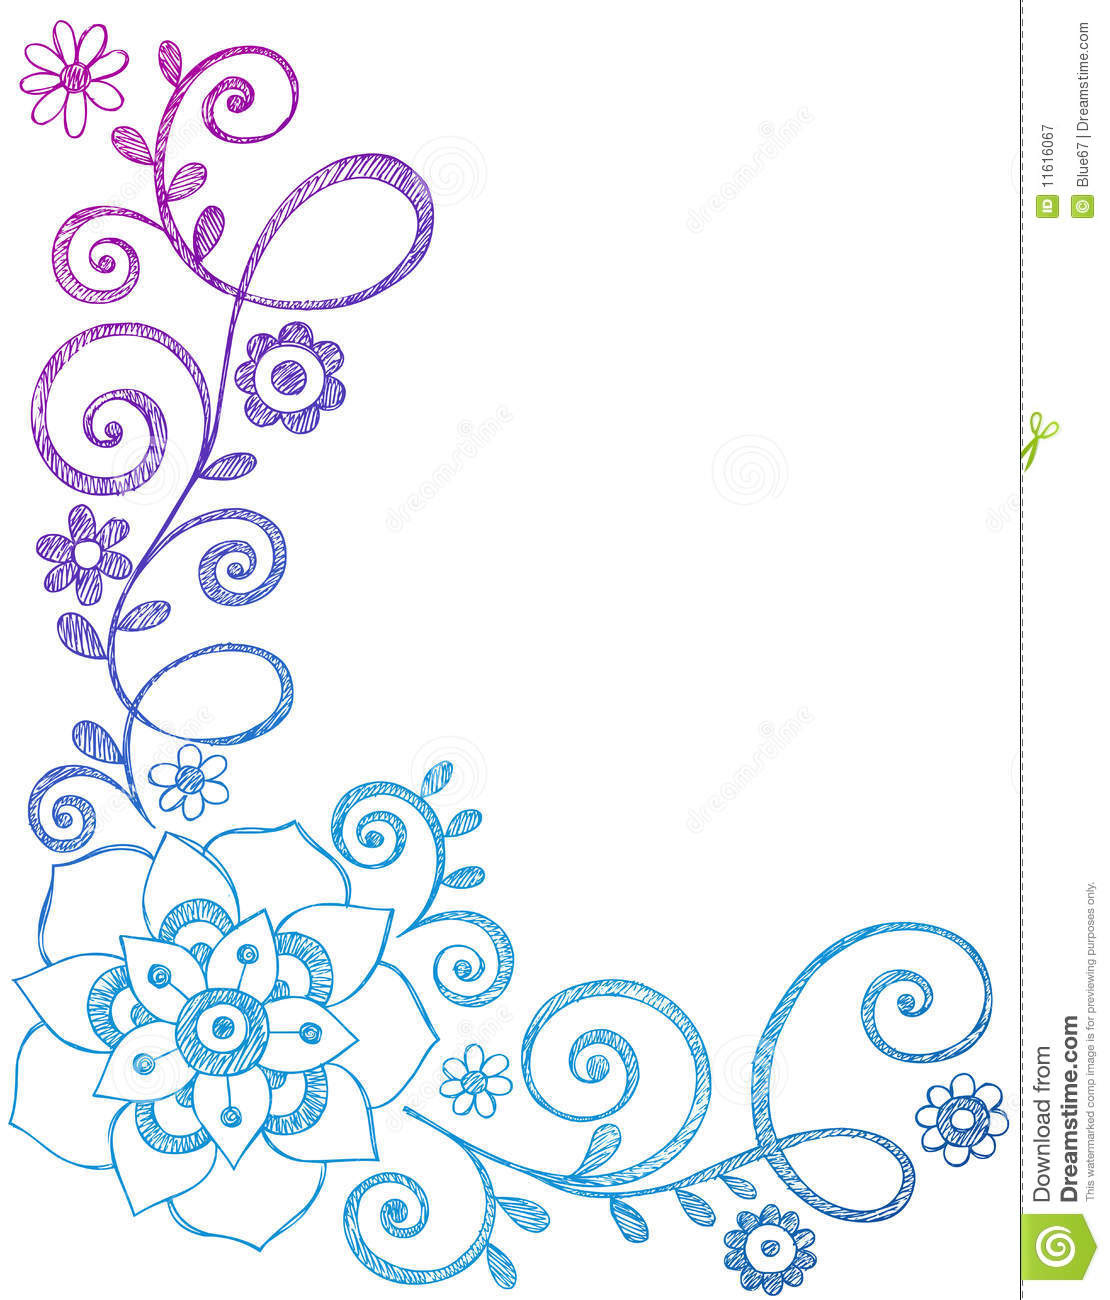 Drawing Designs On Paper Borders Easy Max Installer